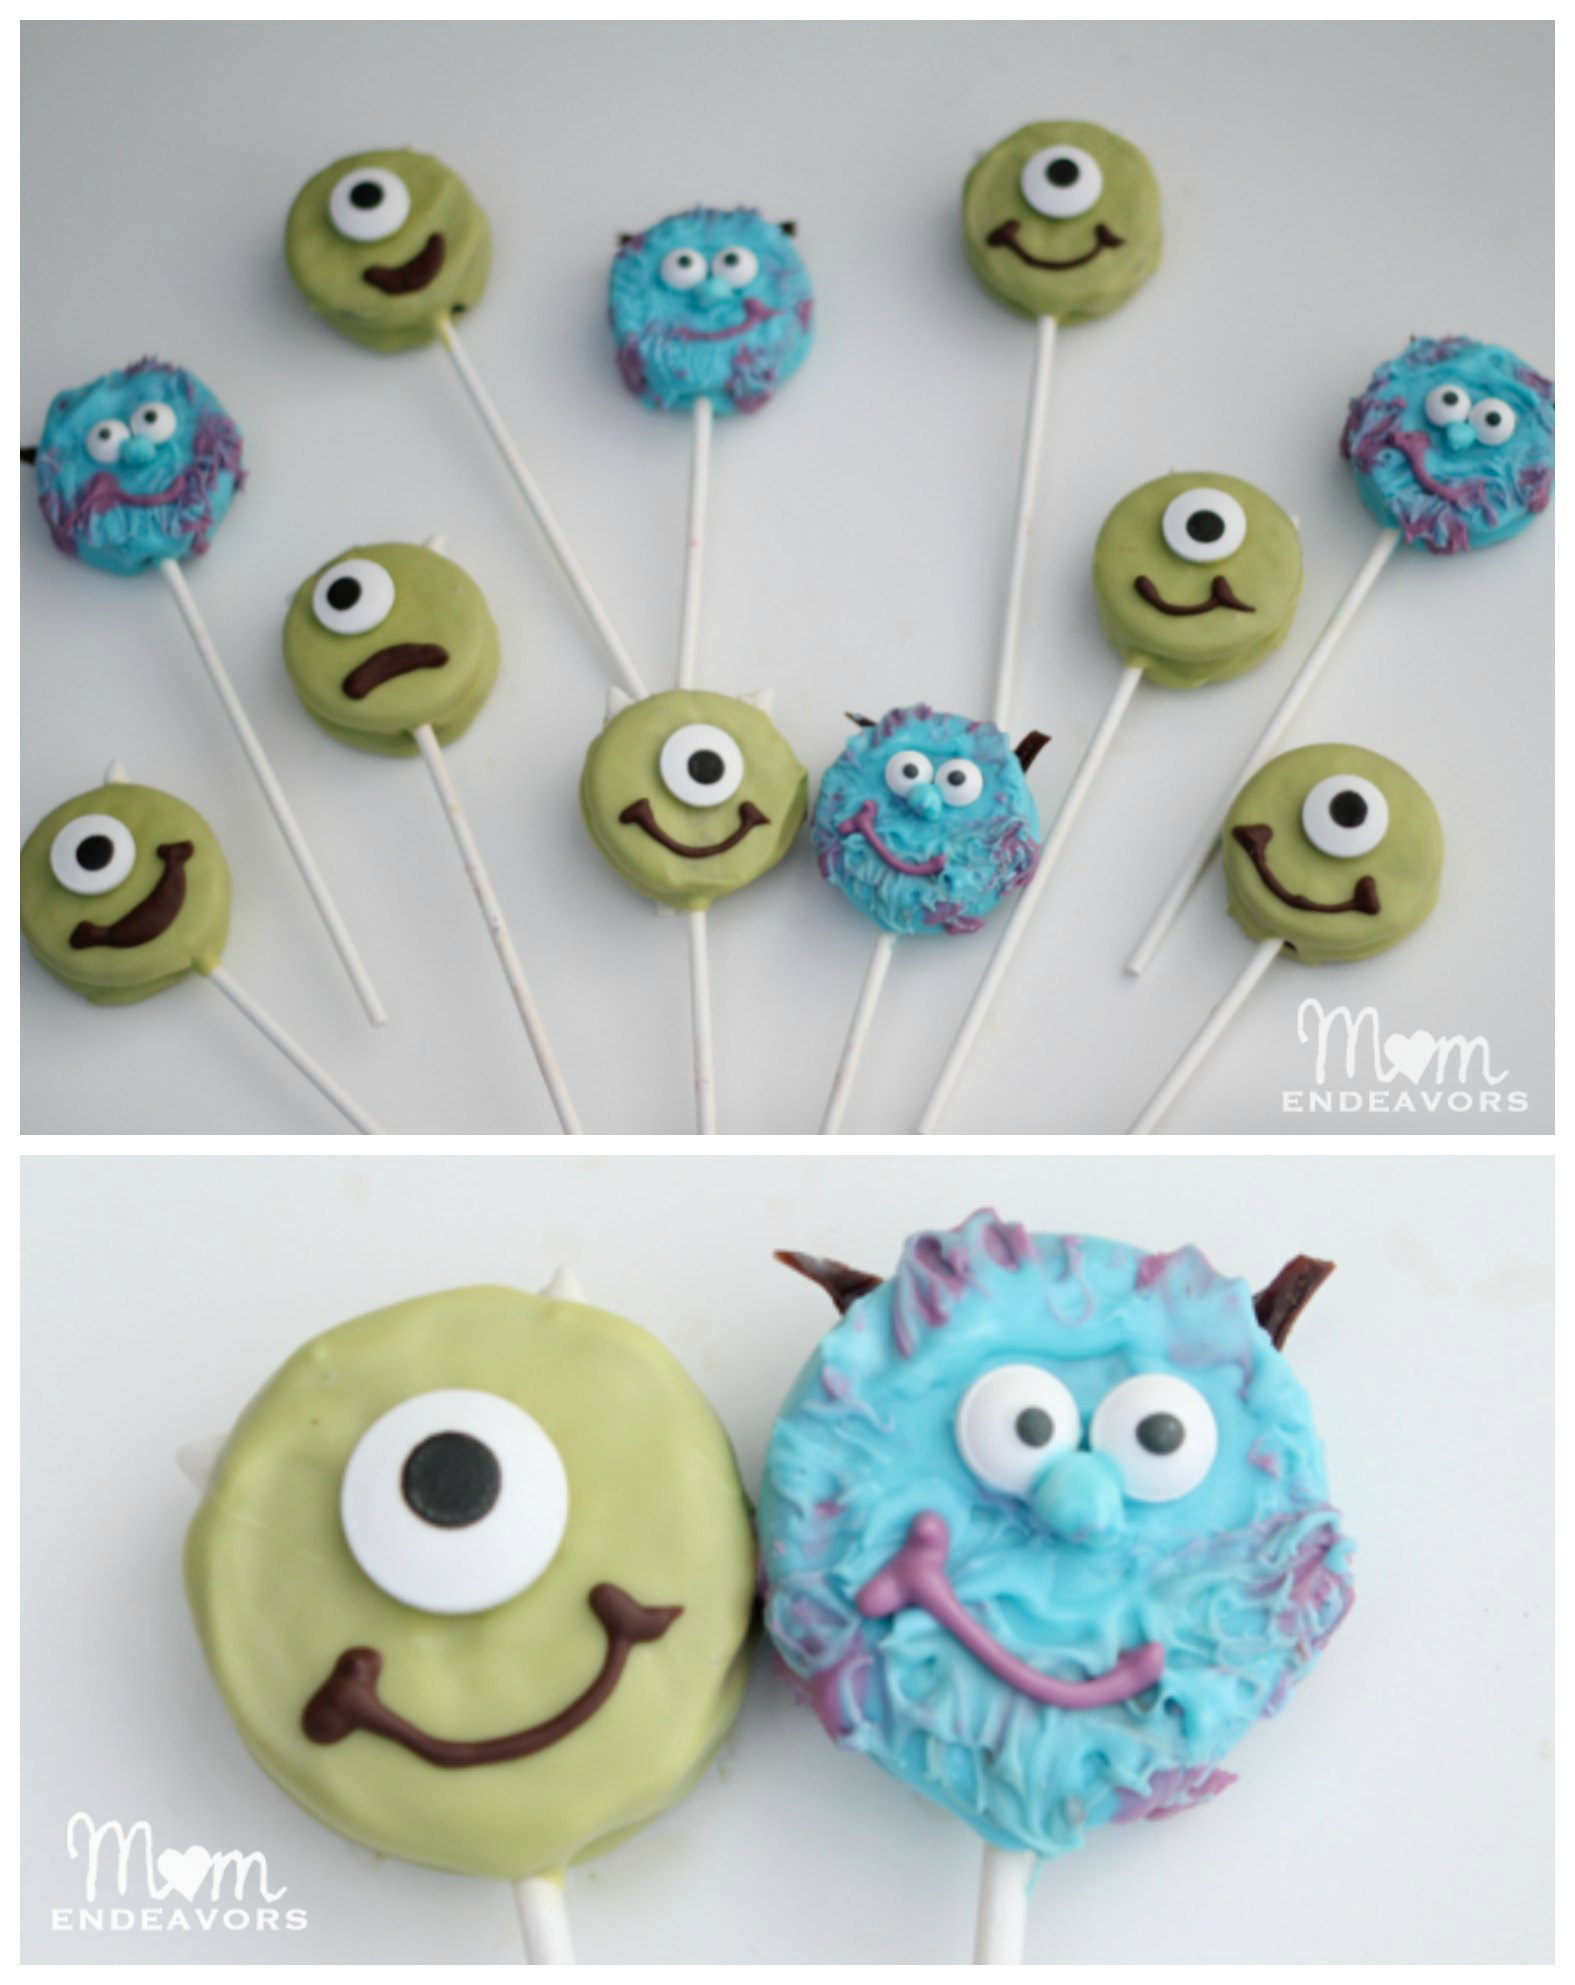 Mike & Sulley Monsters Pops